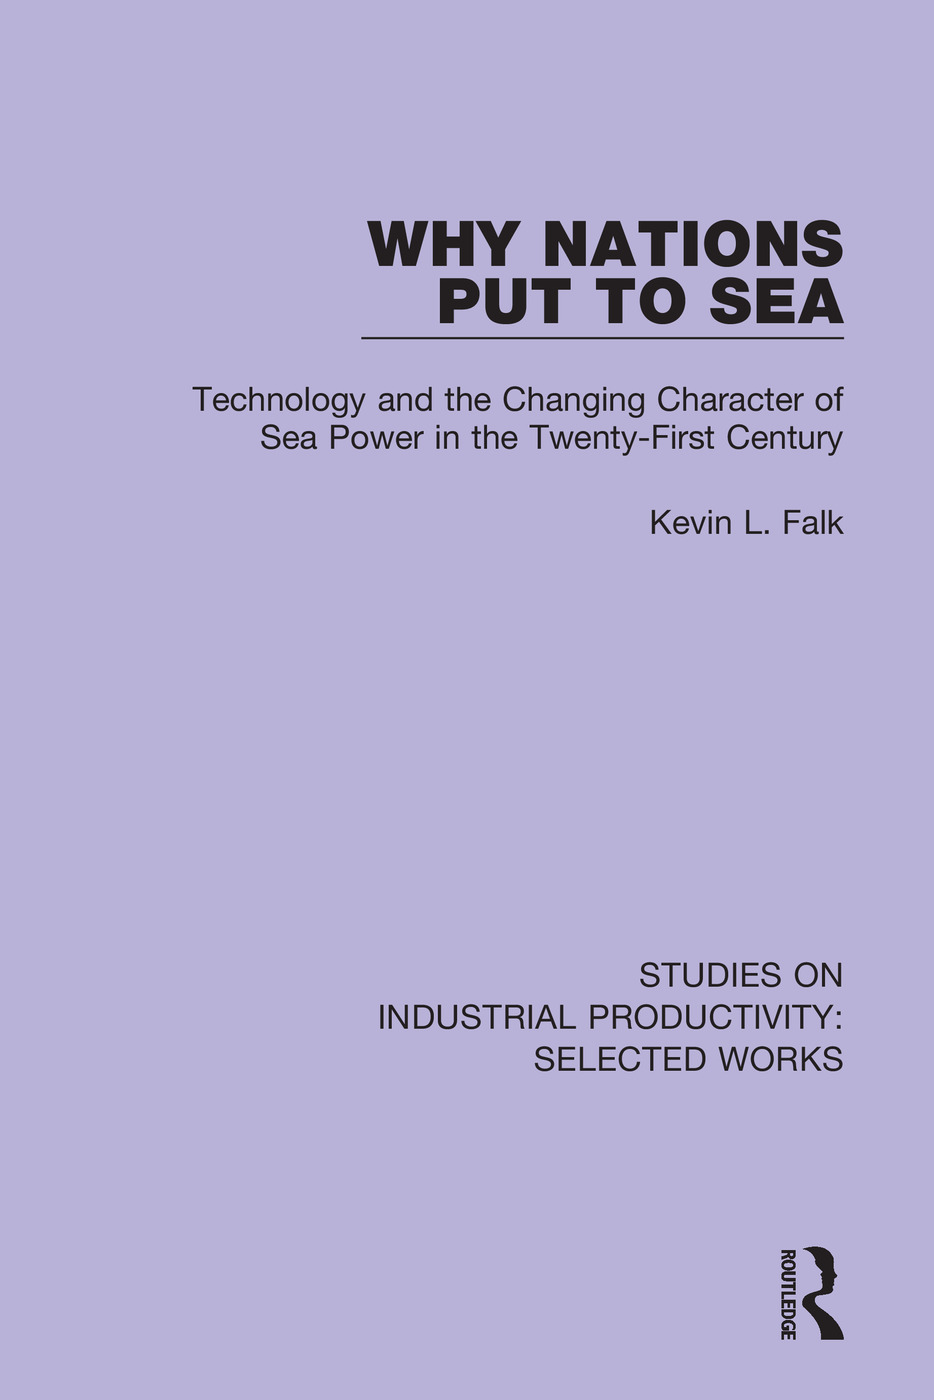 Why Nations Put to Sea: Technology and the Changing Character of Sea Power in the Twenty-First Century book cover